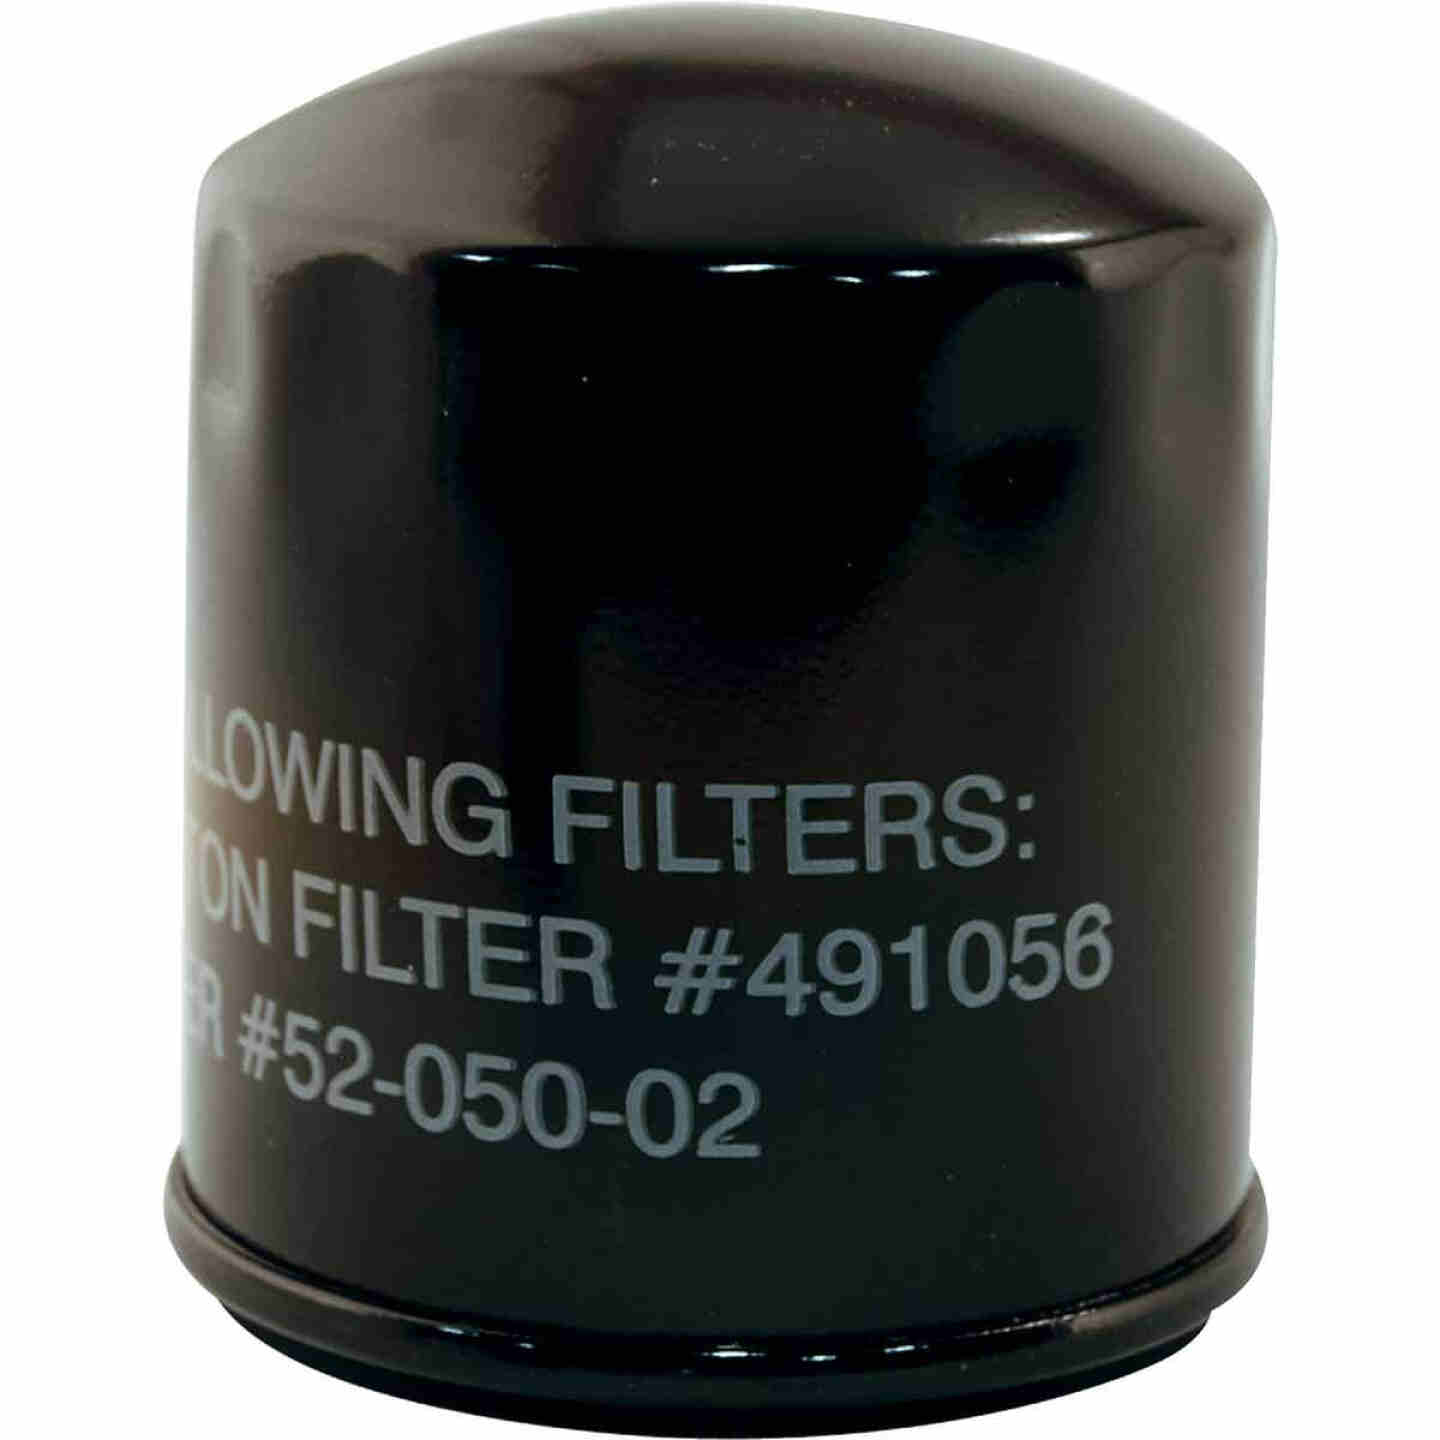 Arnold Oil Filter for Briggs & Stratton and Kohler Engines Image 1